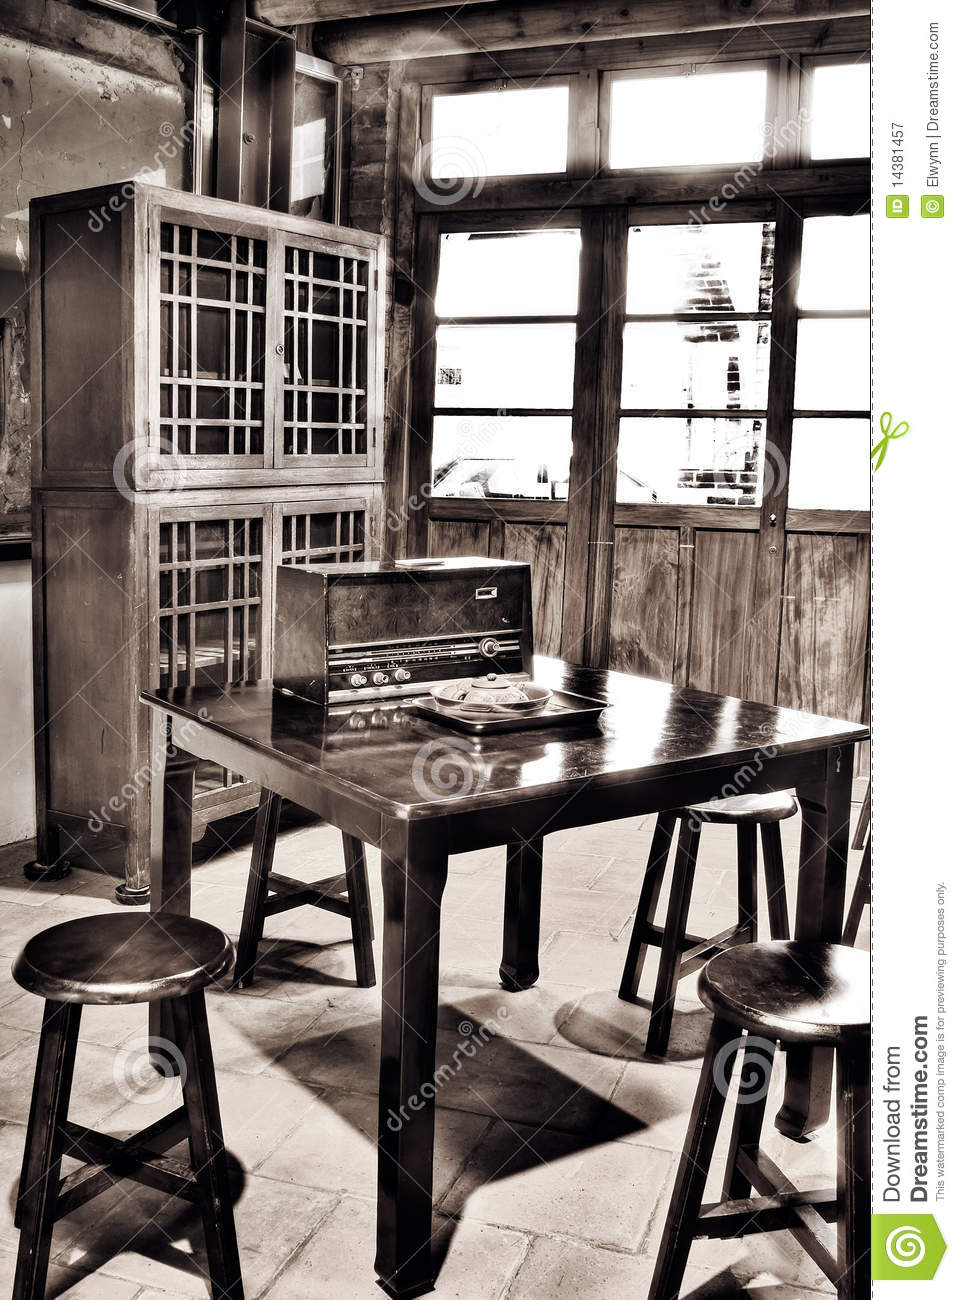 asian old house interior royalty free stock photography - image